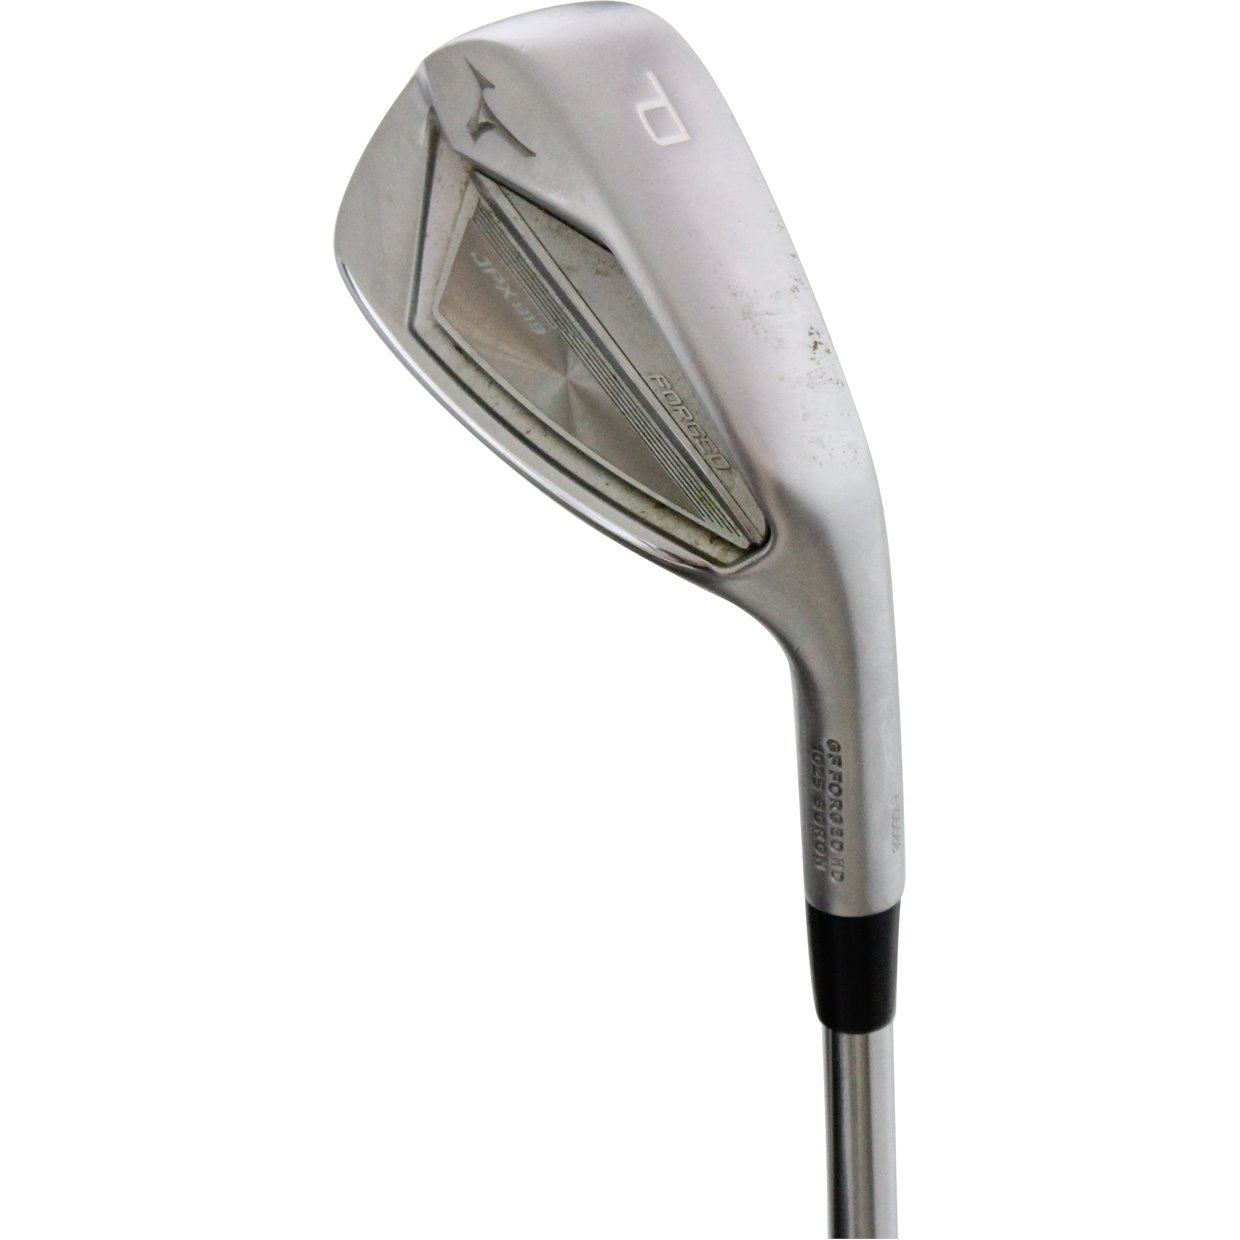 Mizuno JPX 919 Forged Wedge Gap Wedge 50 Degree Used Golf ...